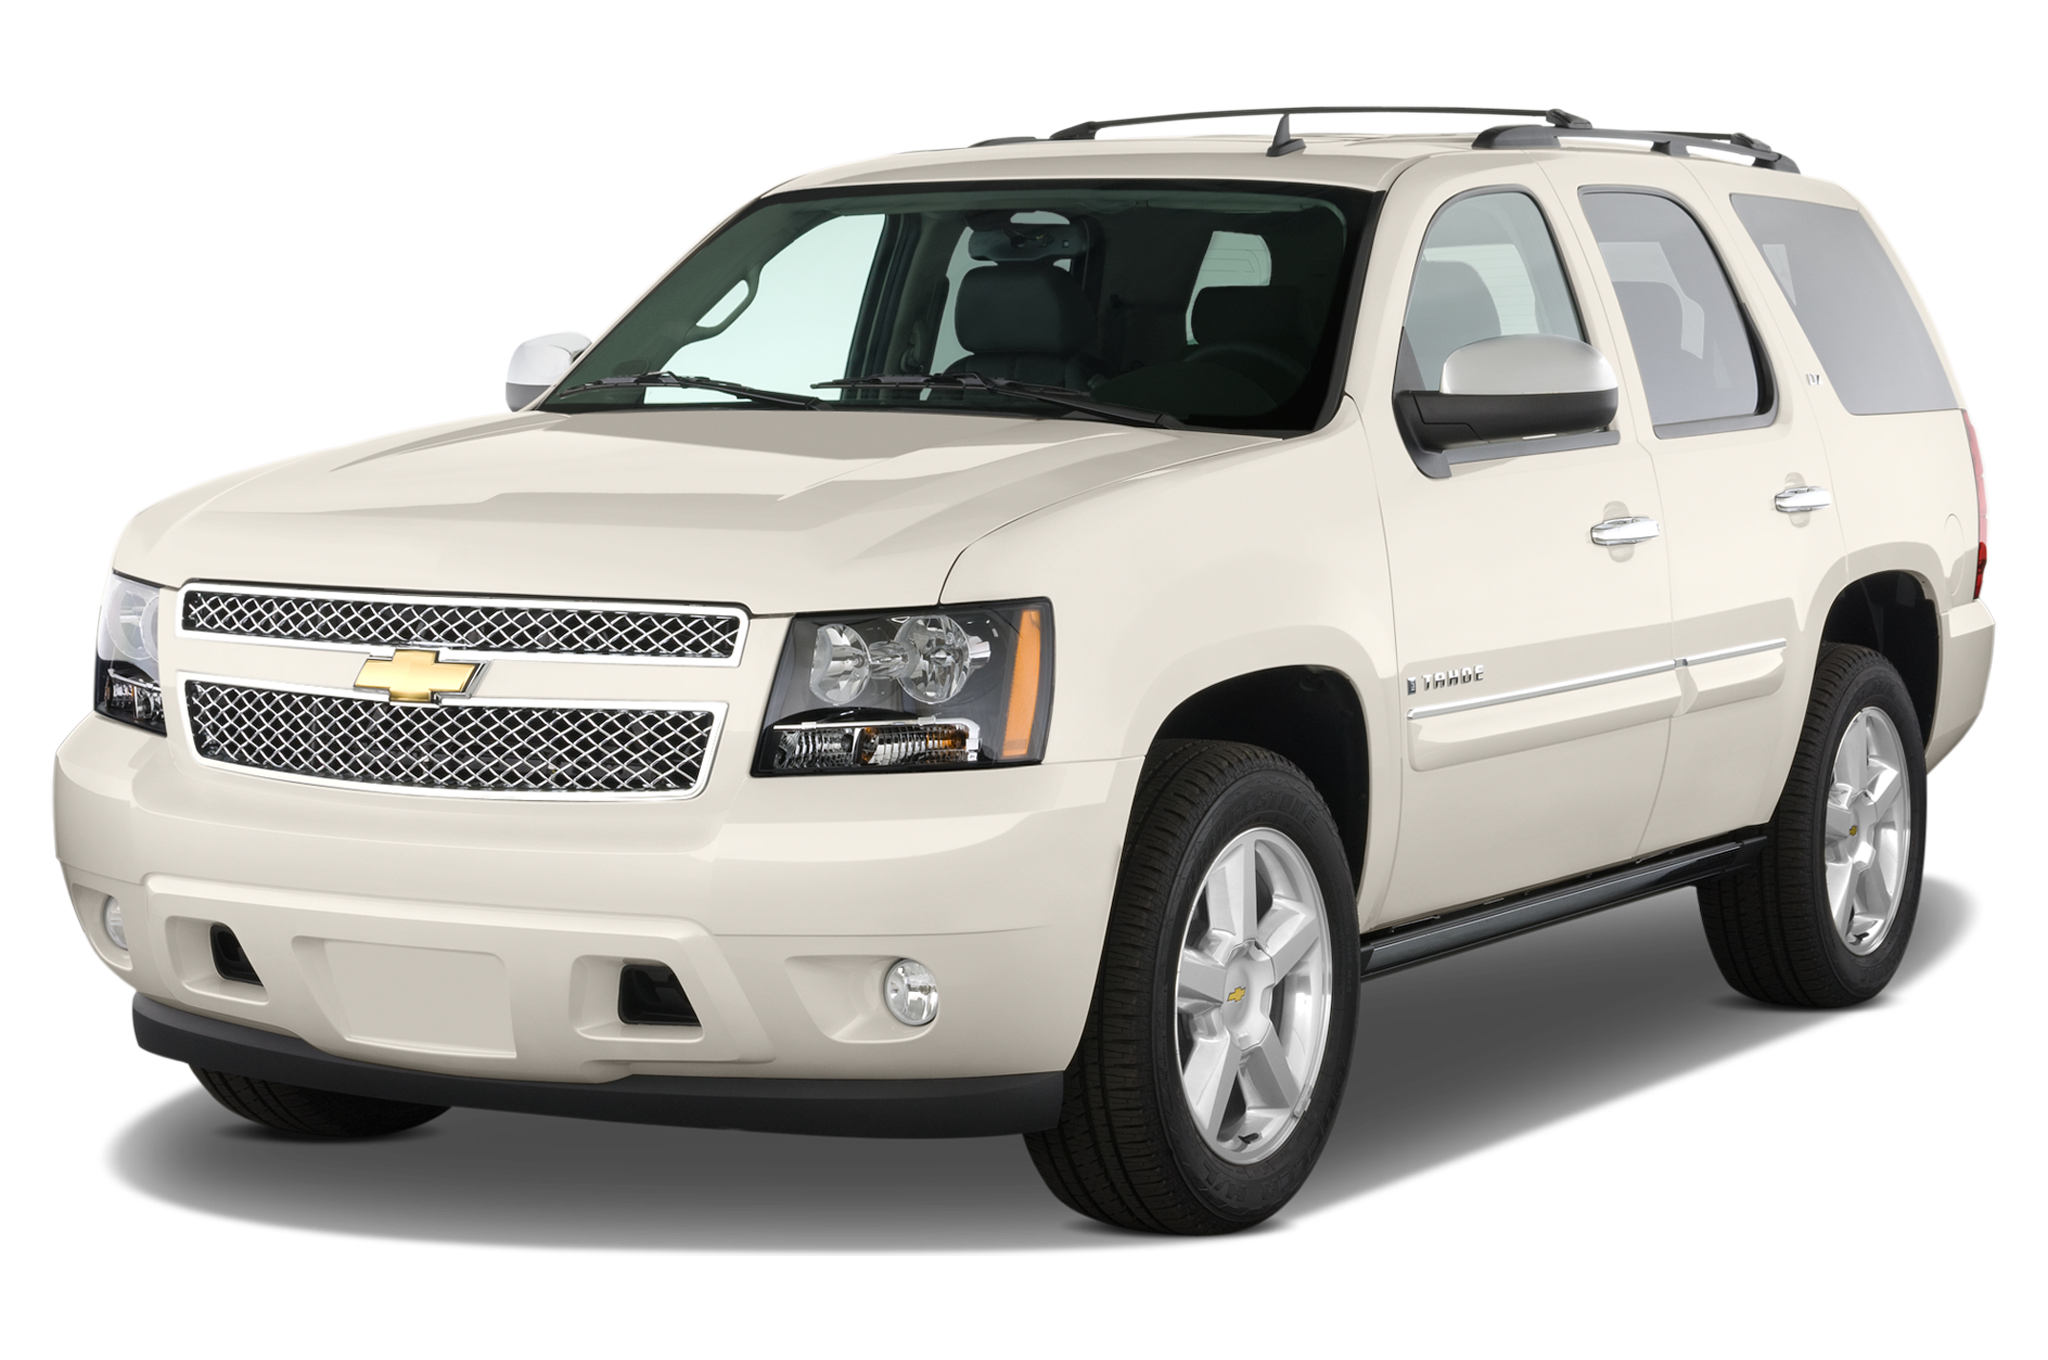 2013 Chevrolet Tahoe Reviews and Rating | Motor Trend